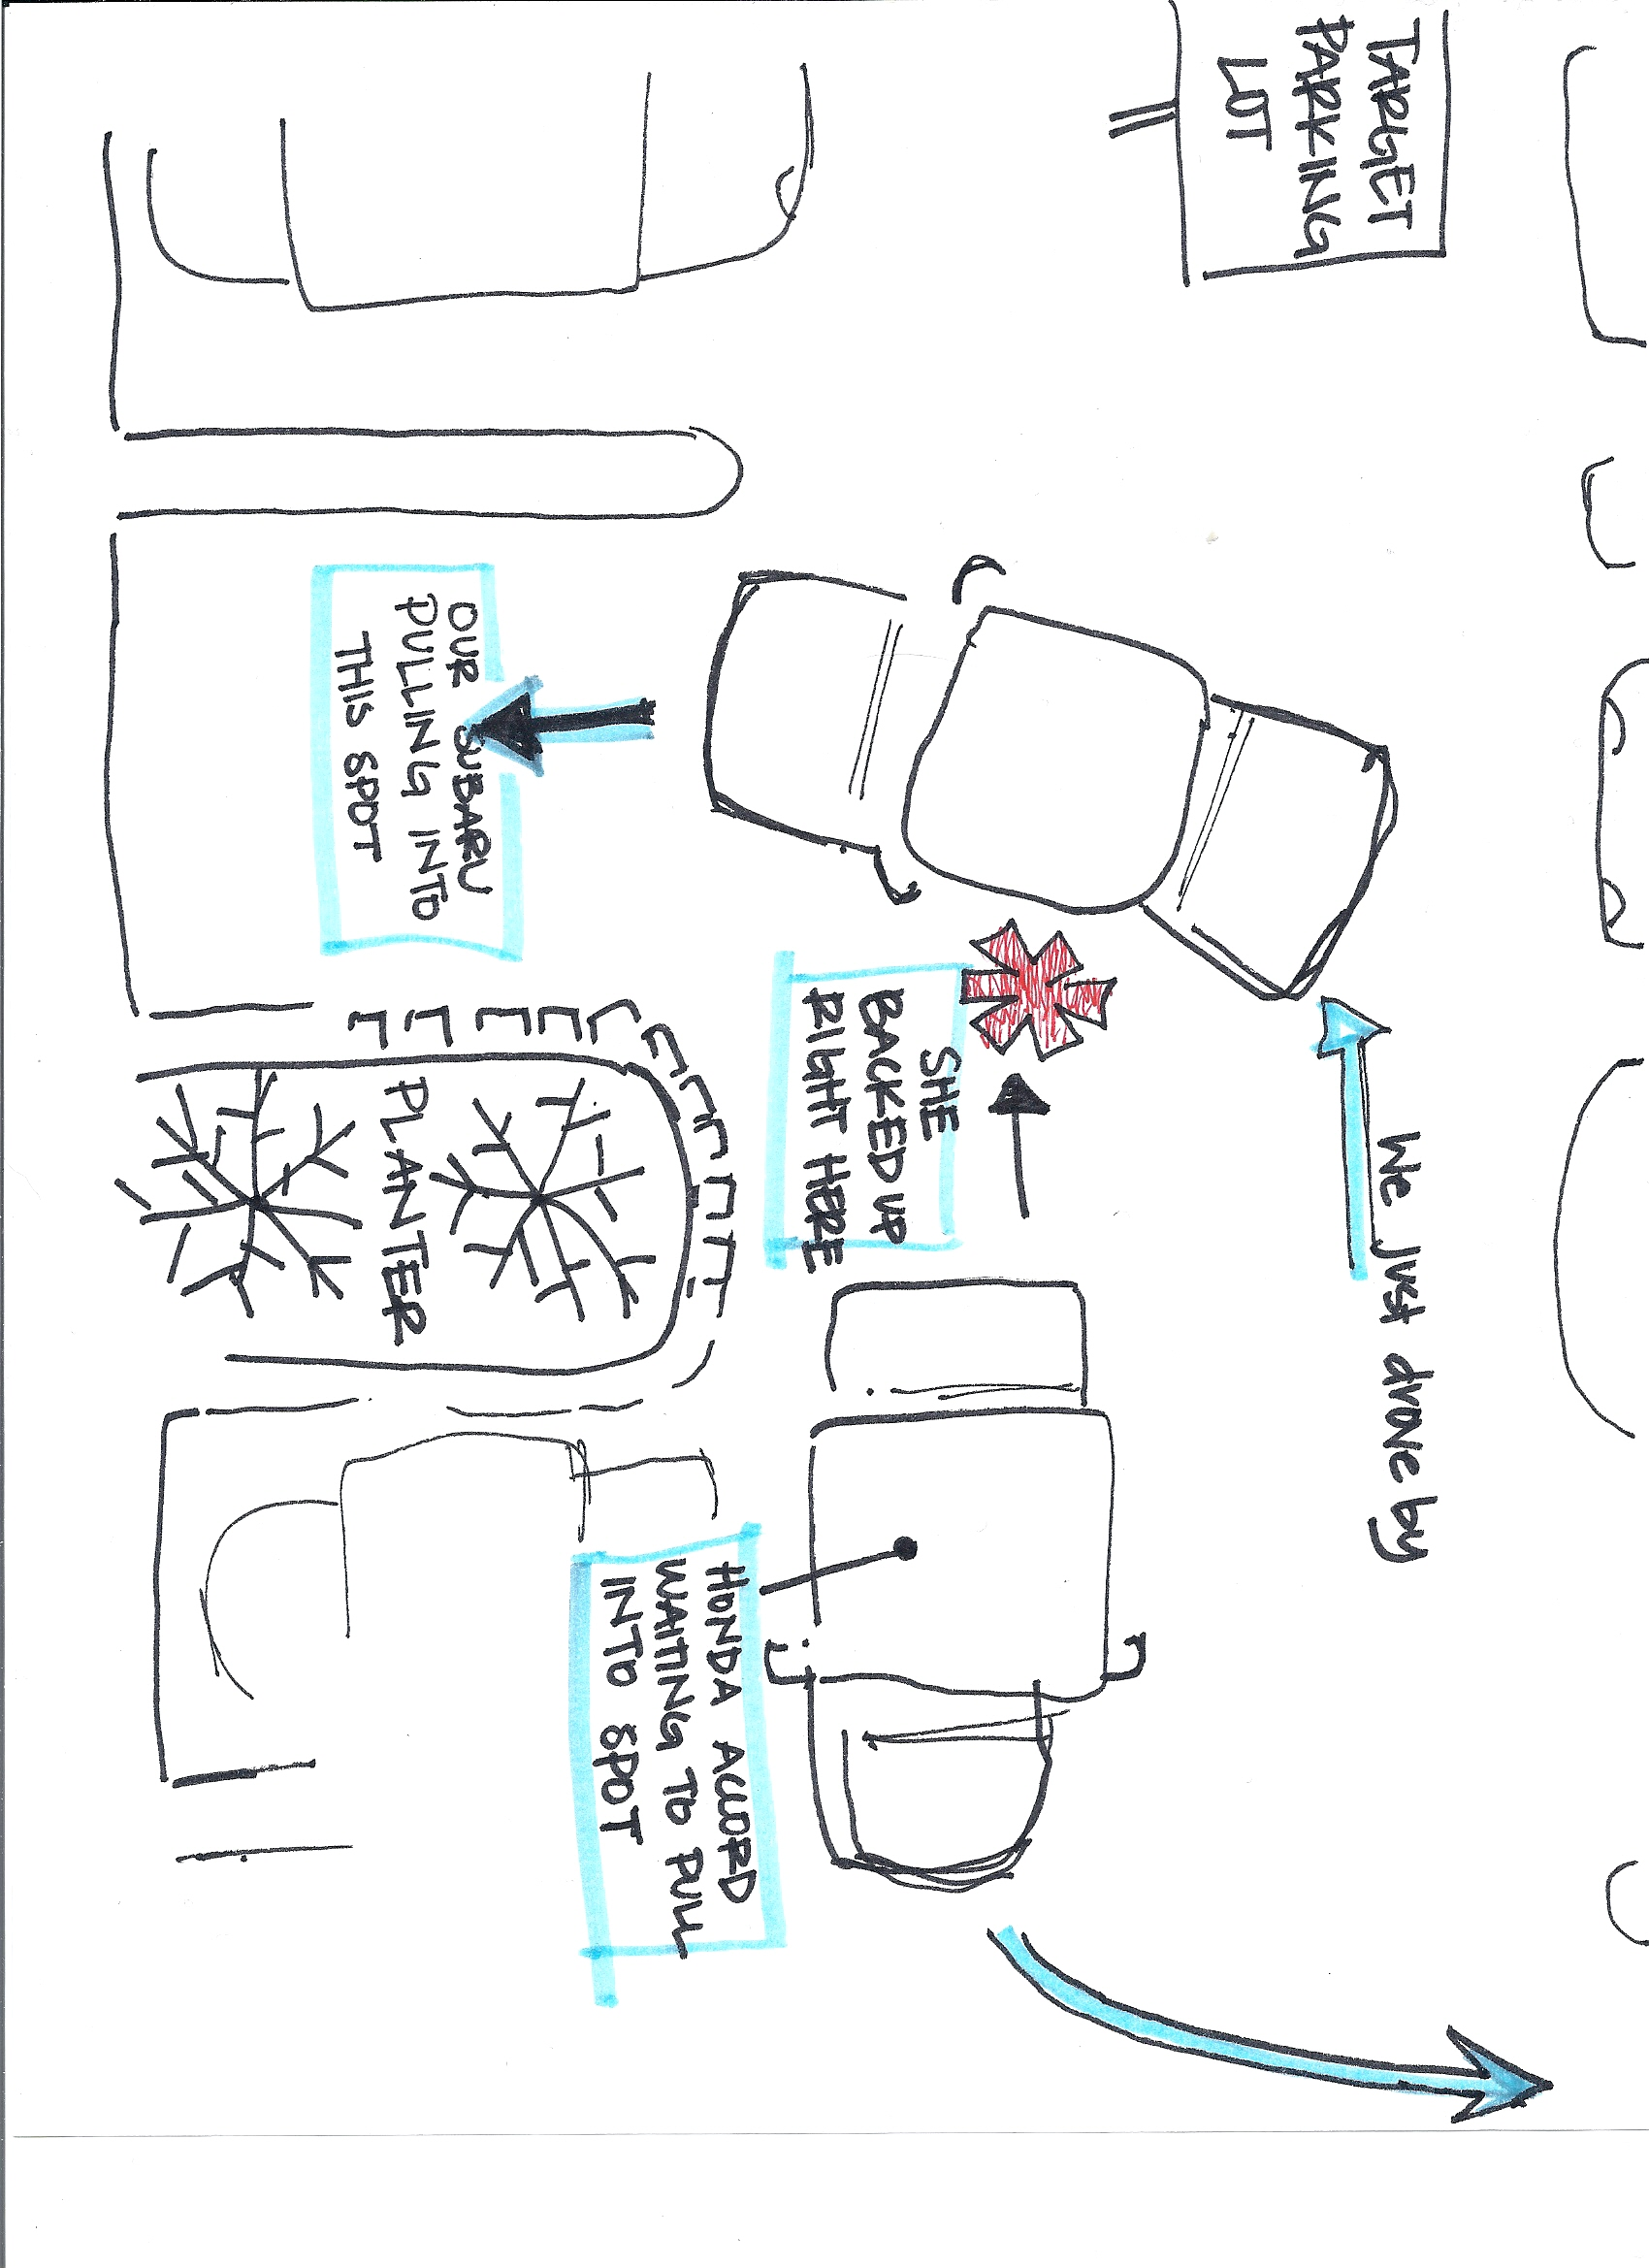 hight resolution of draw accident diagram related keywords u0026 suggestions draw accidentcar accident draw diagram